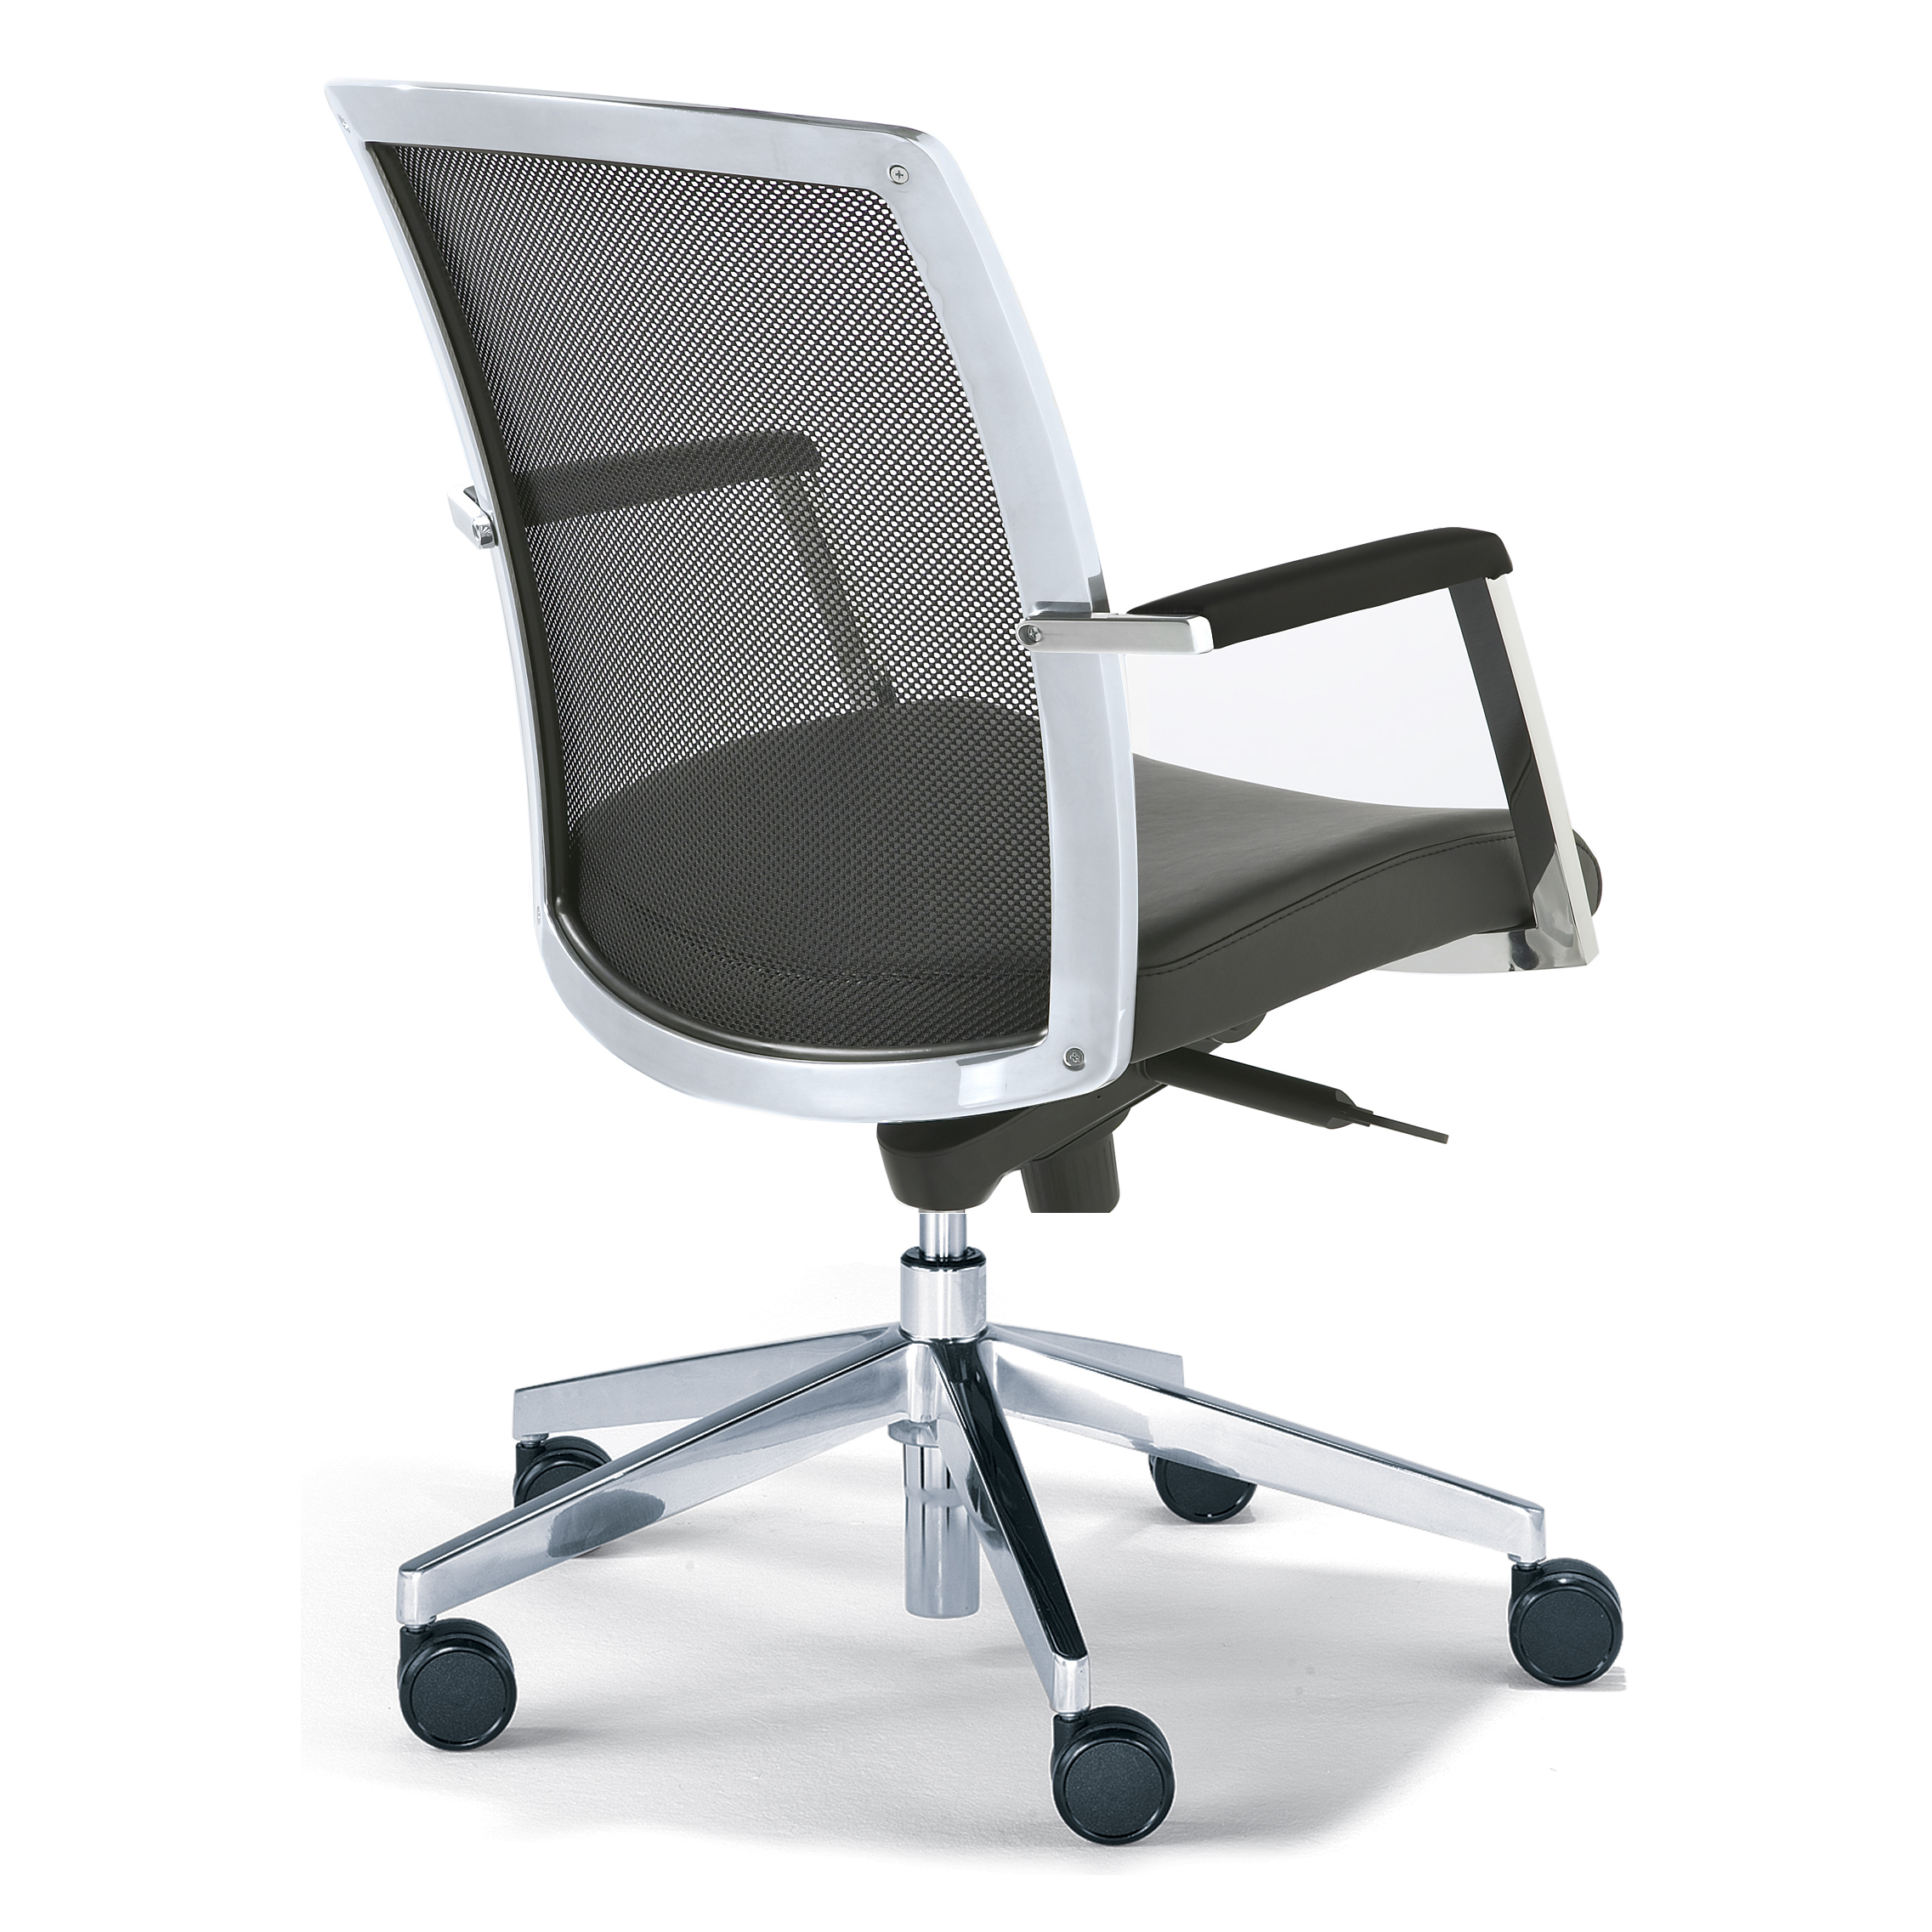 Dauphin Chairs Highway Swivel Chairs Executive Conference And Visitor Chairs